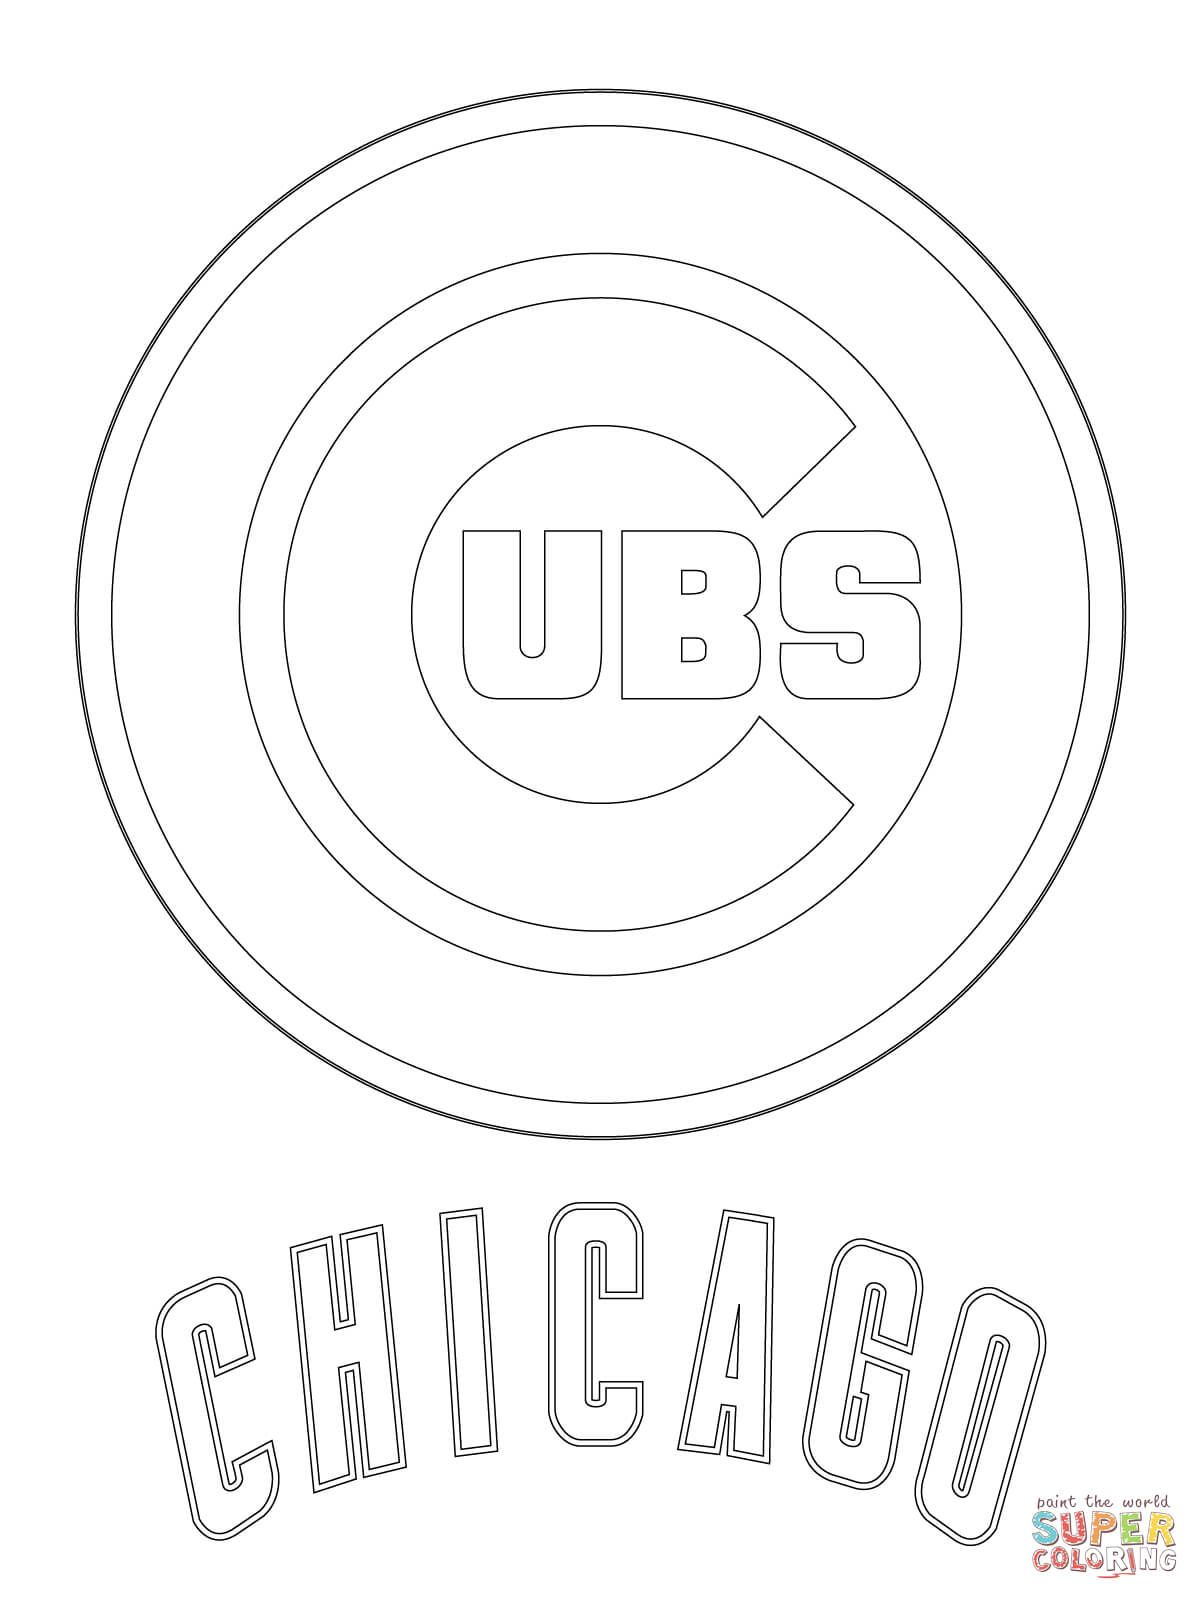 Pin By Julia On Colorings Cubs Baseball Chicago Cubs Baseball